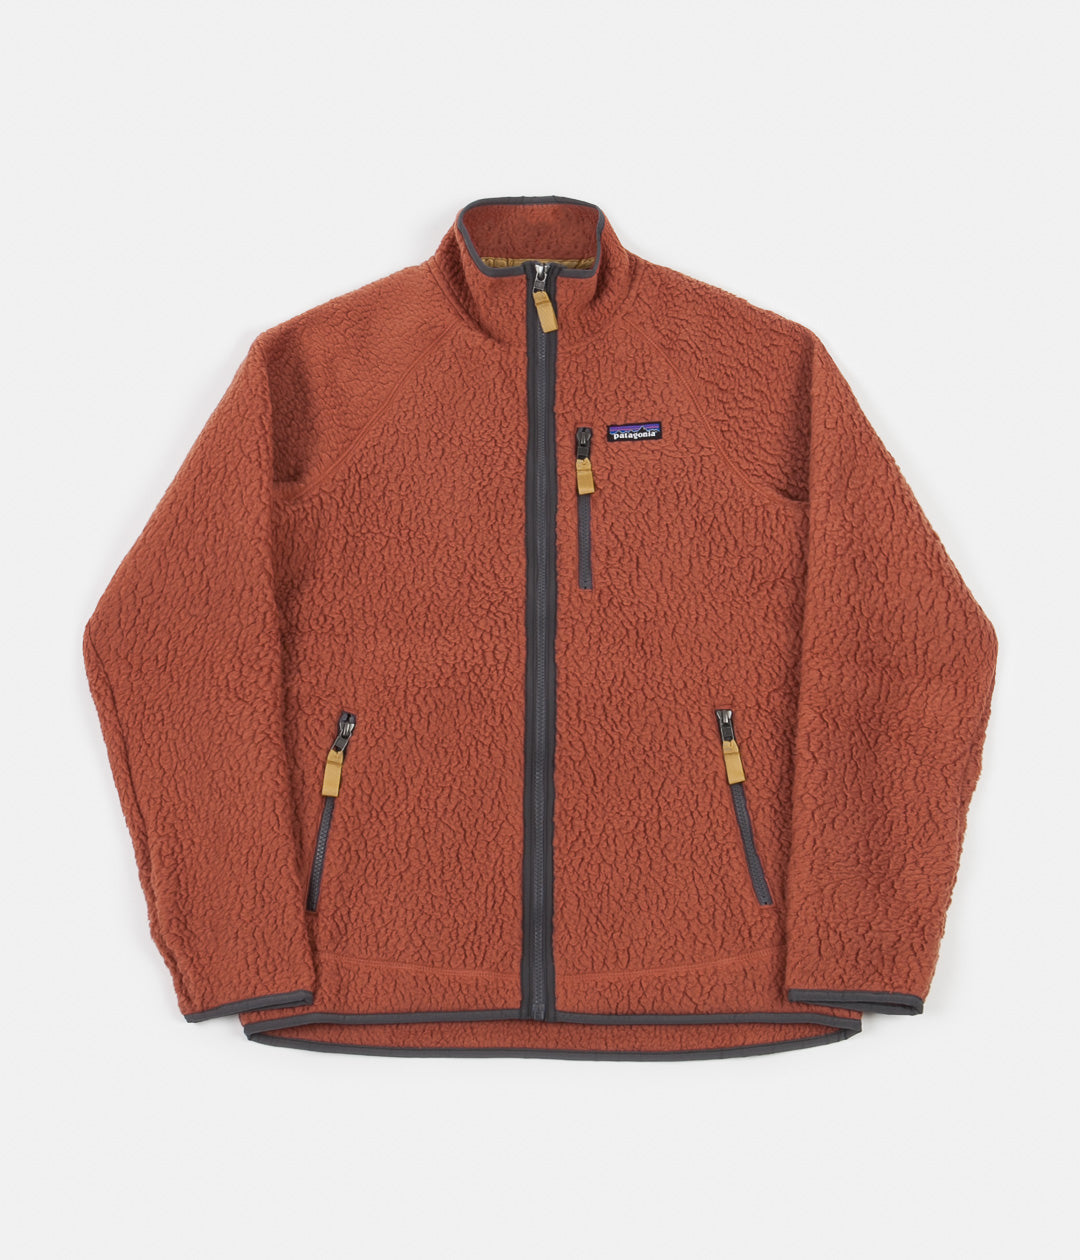 Patagonia Retro Pile Fleece Jacket - Spanish Red